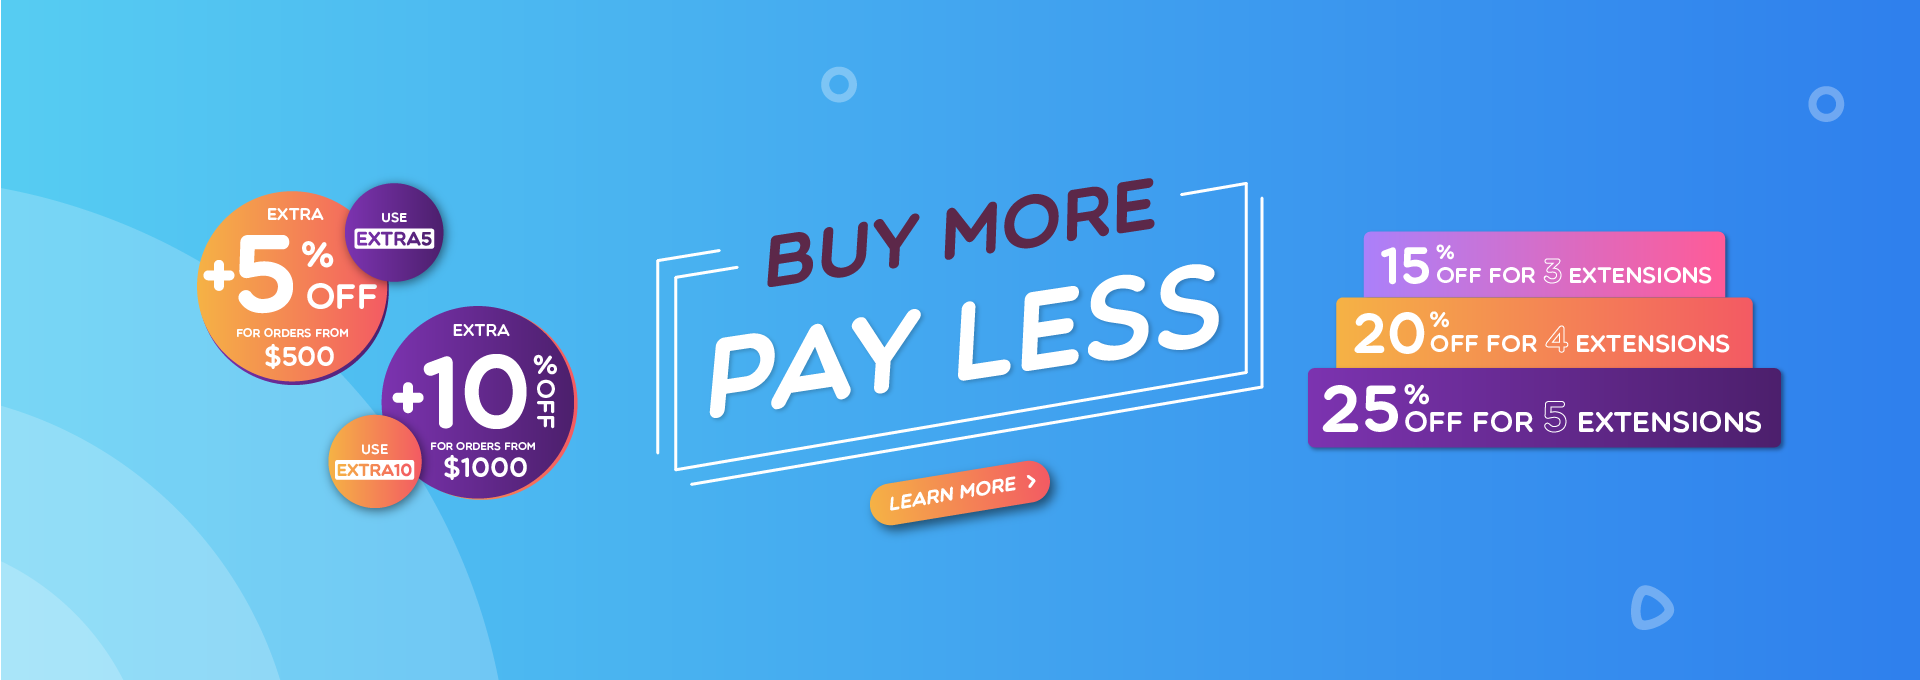 Buy more pay less